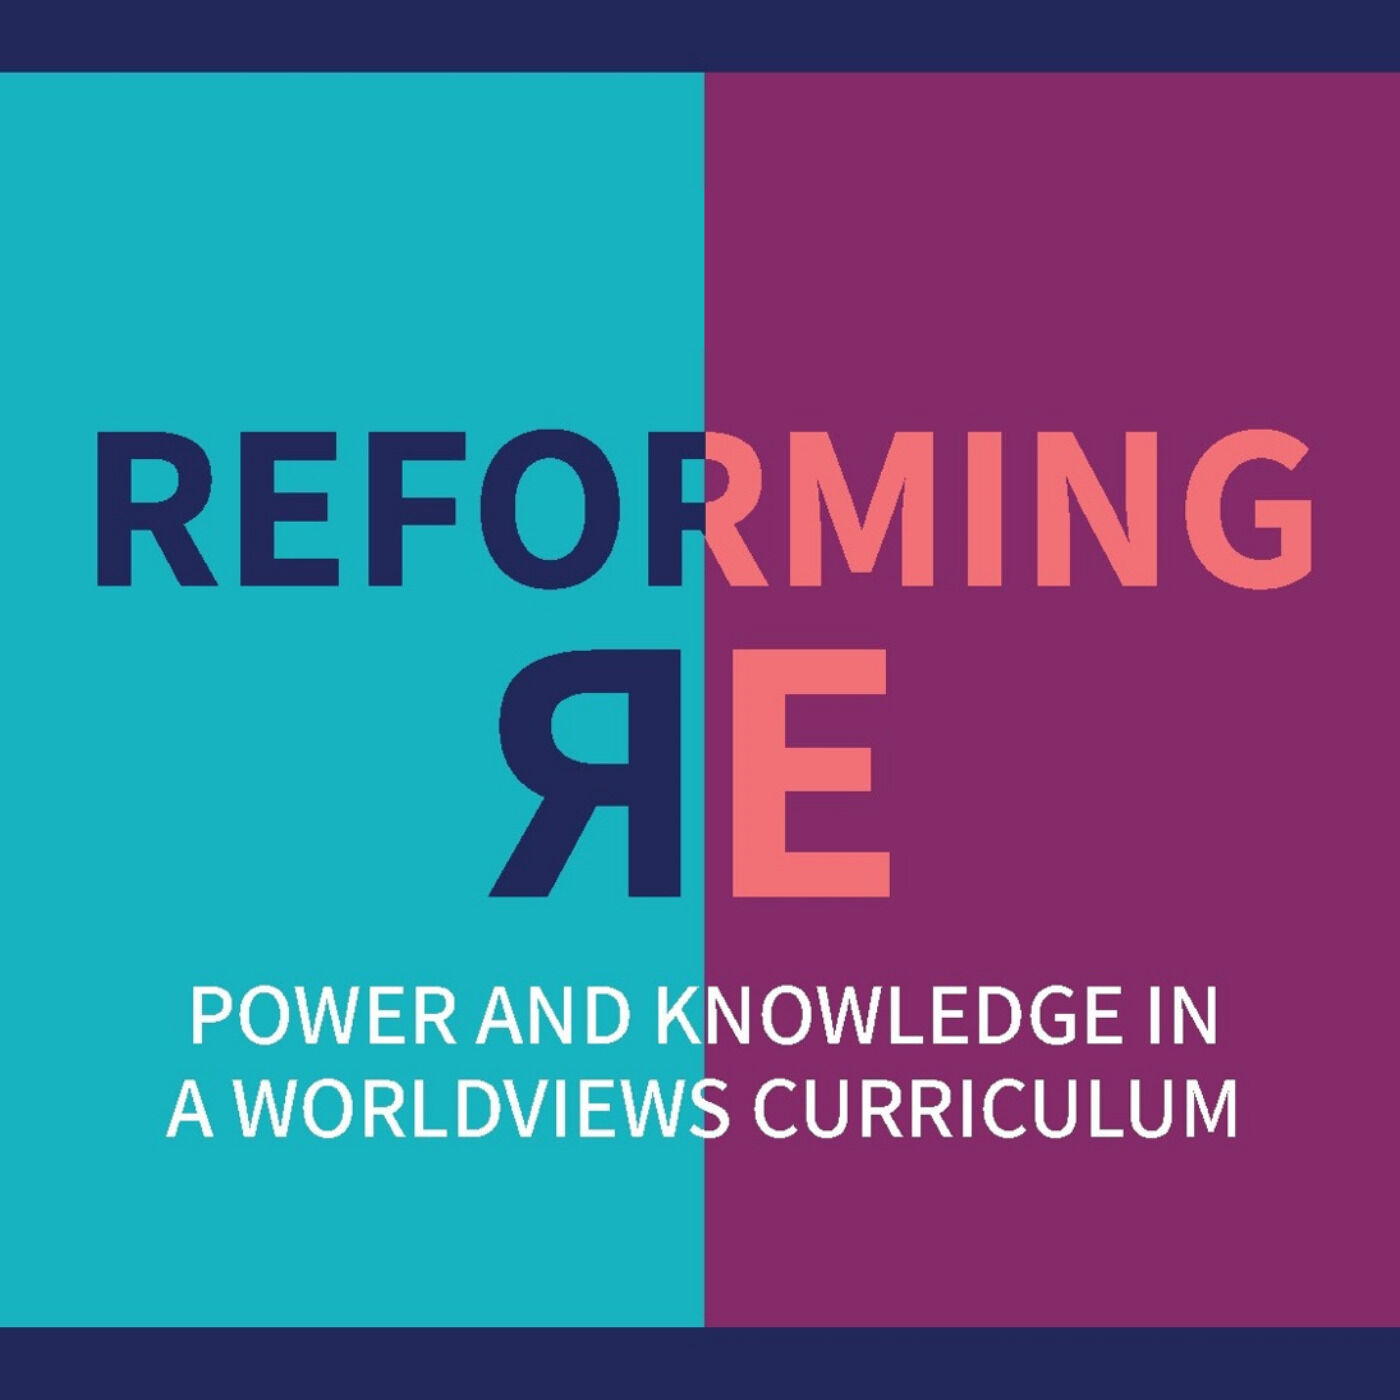 Reforming RE: creating a worldviews curriculum, with Kate Christopher